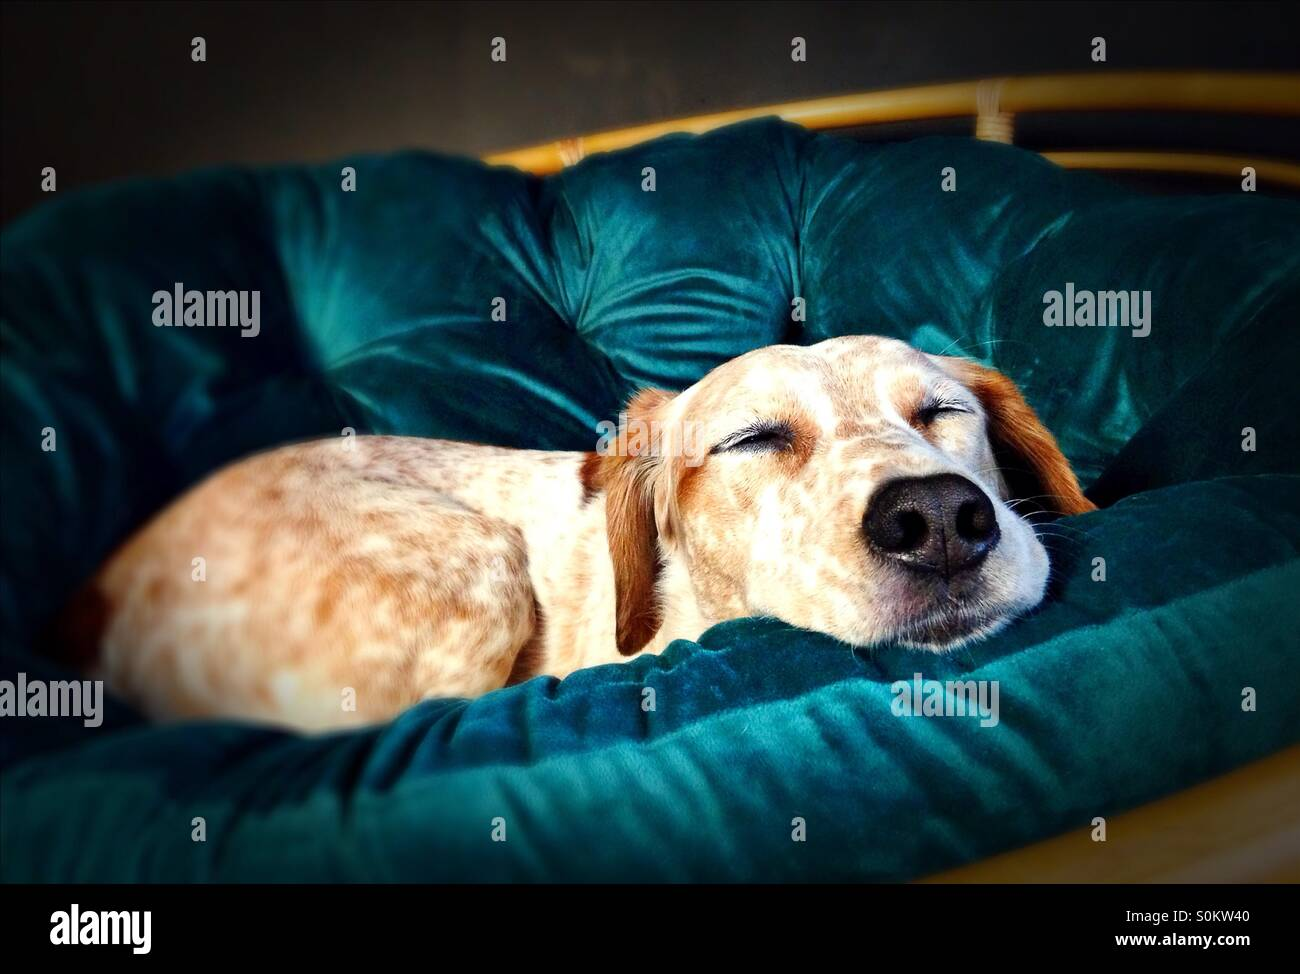 A dog sleeping on a chair. - Stock Image